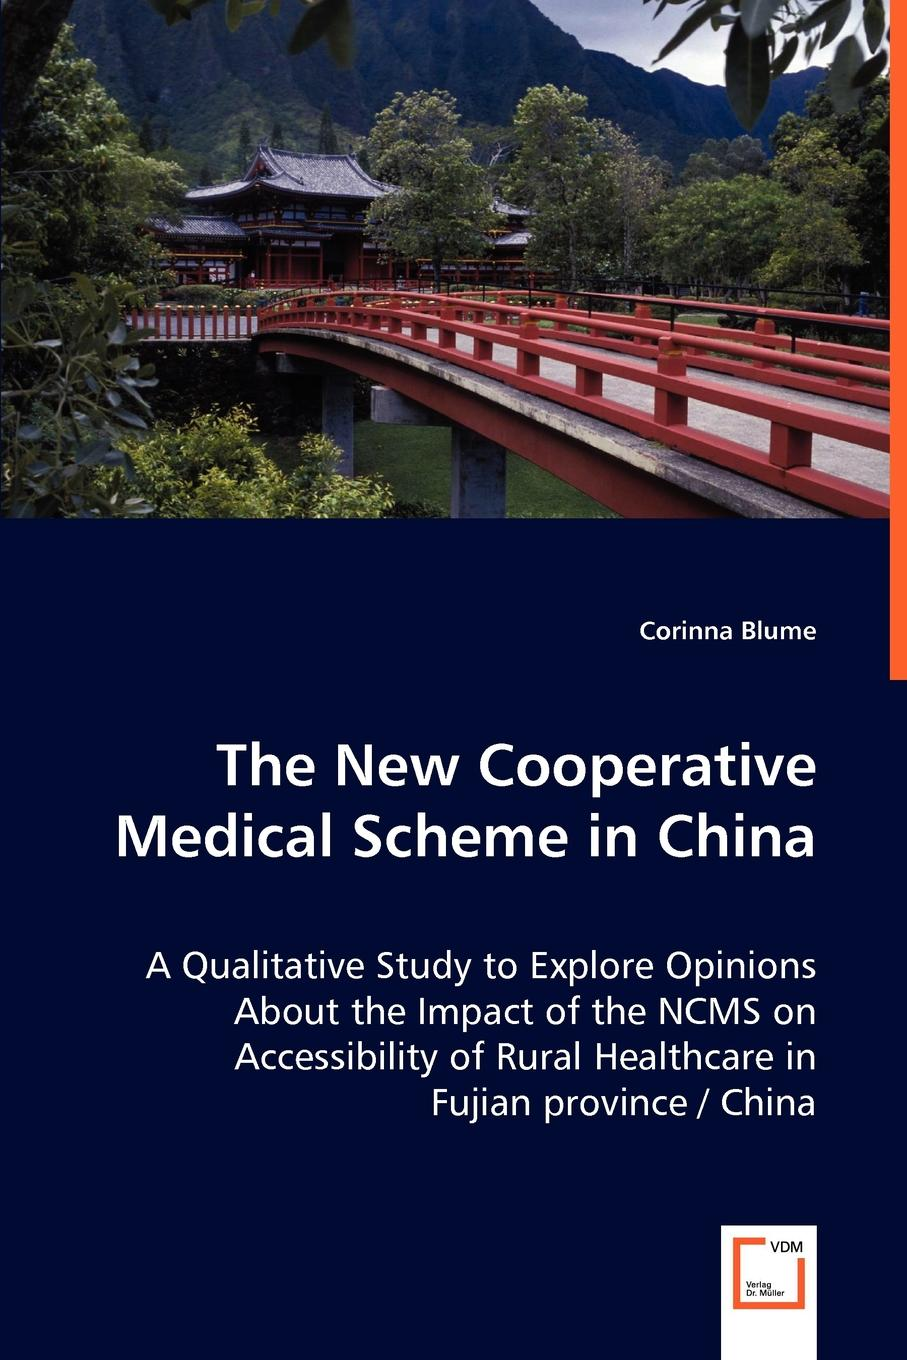 Corinna Blume The New Cooperative Medical Scheme in China - A Qualitative Study to Explore Opinions About the Impact of the NCMS on Accessibility of Rural Healthcare in Fujian province / China study of icds scheme in rural and tribal projects in maharashtra